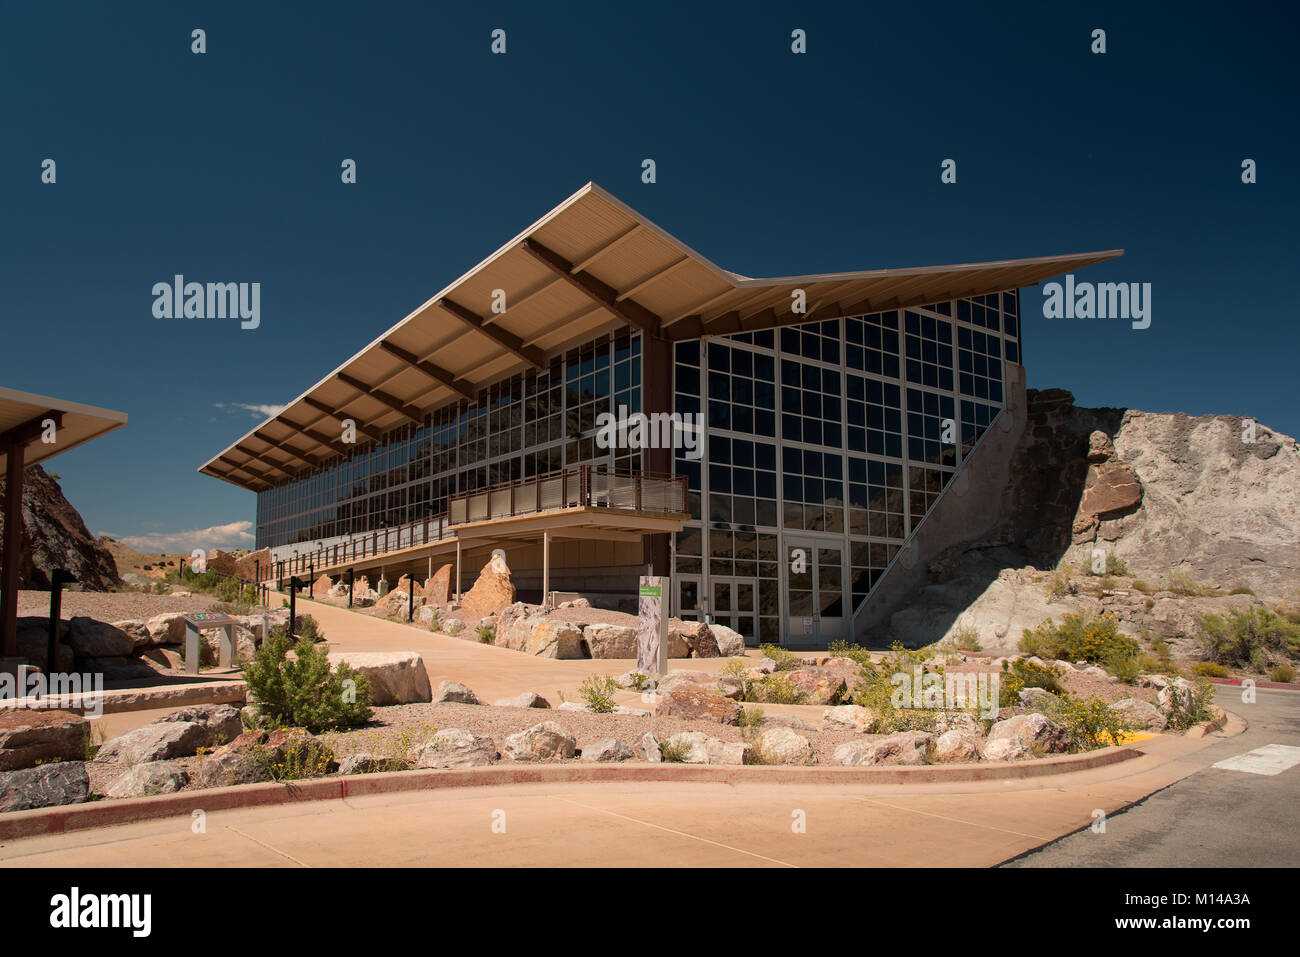 The Quarry Exhibit Center at Dinosaur National Monument, Utah.  The exhibit hall contains a wall of rock yielding - Stock Image